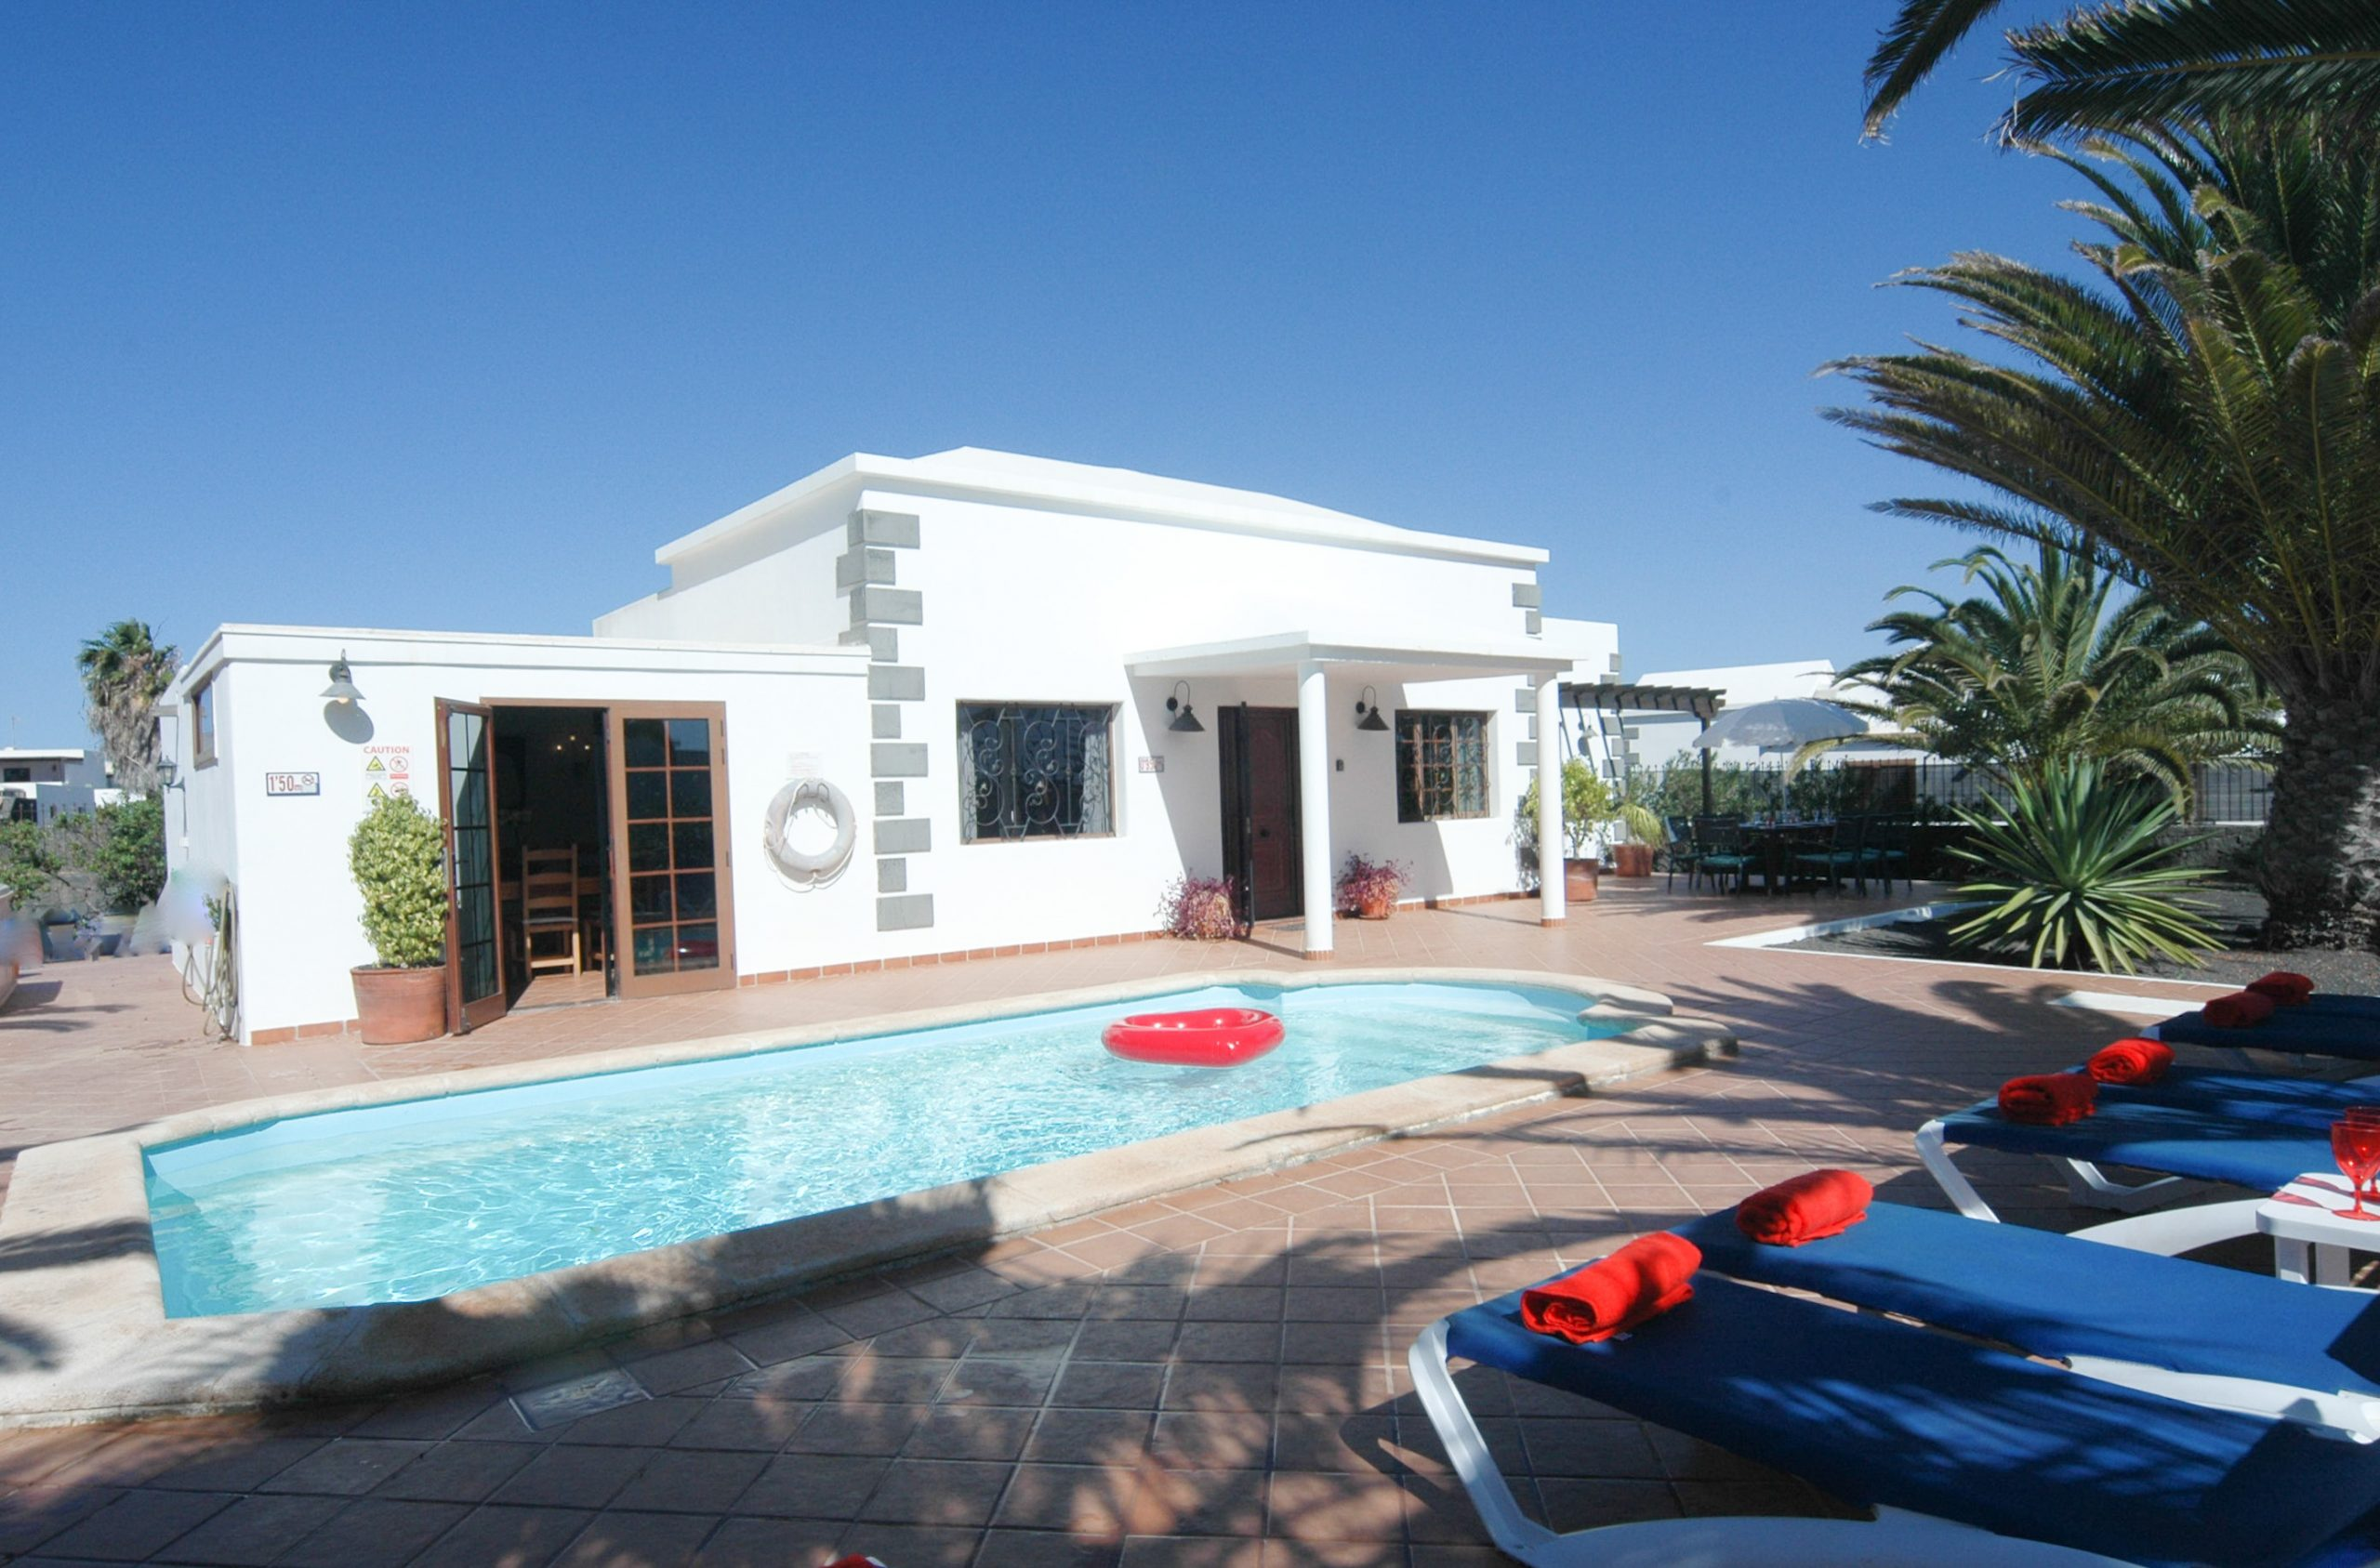 LVC200828 Villa with 4 bedrooms and heated pool